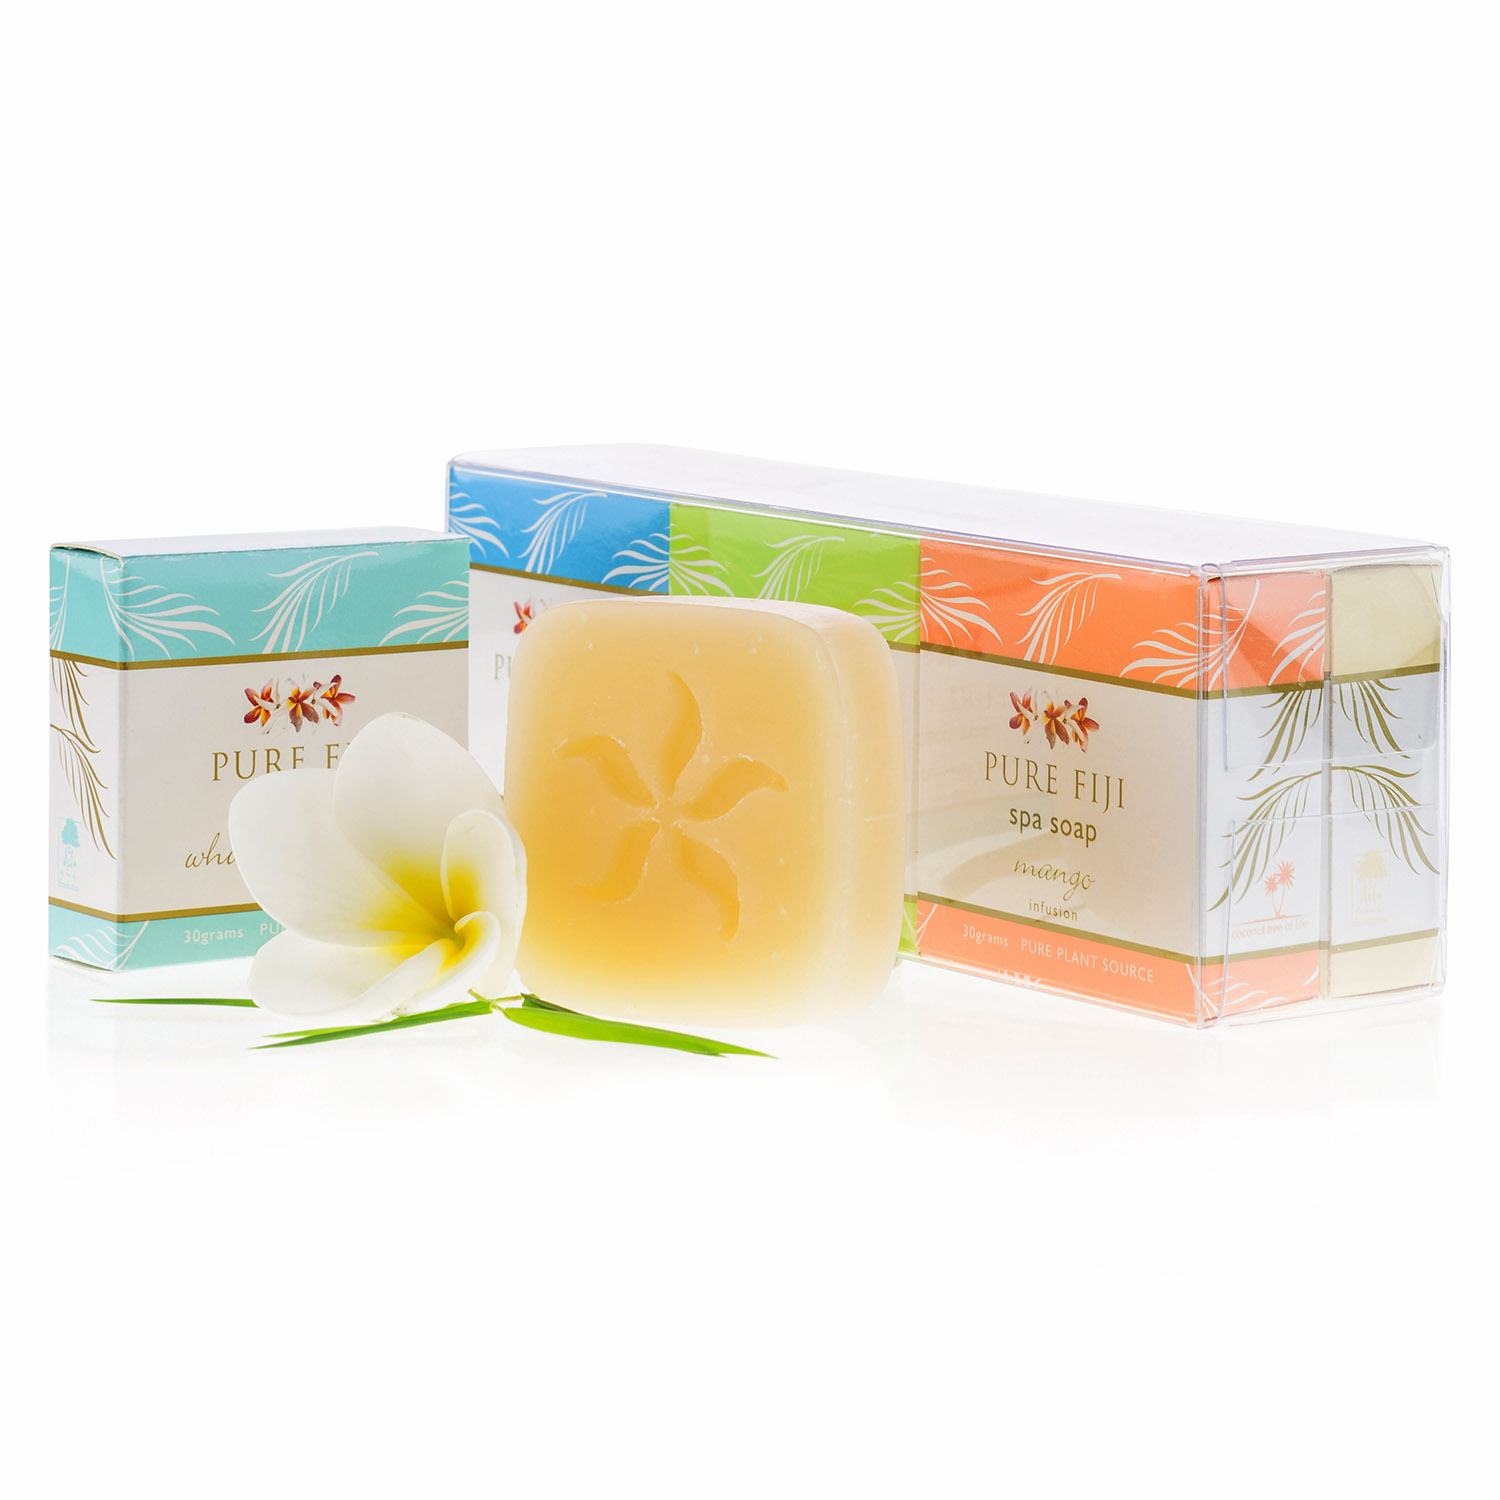 Pure Fiji Spa Soap Gift Pack Mini Size